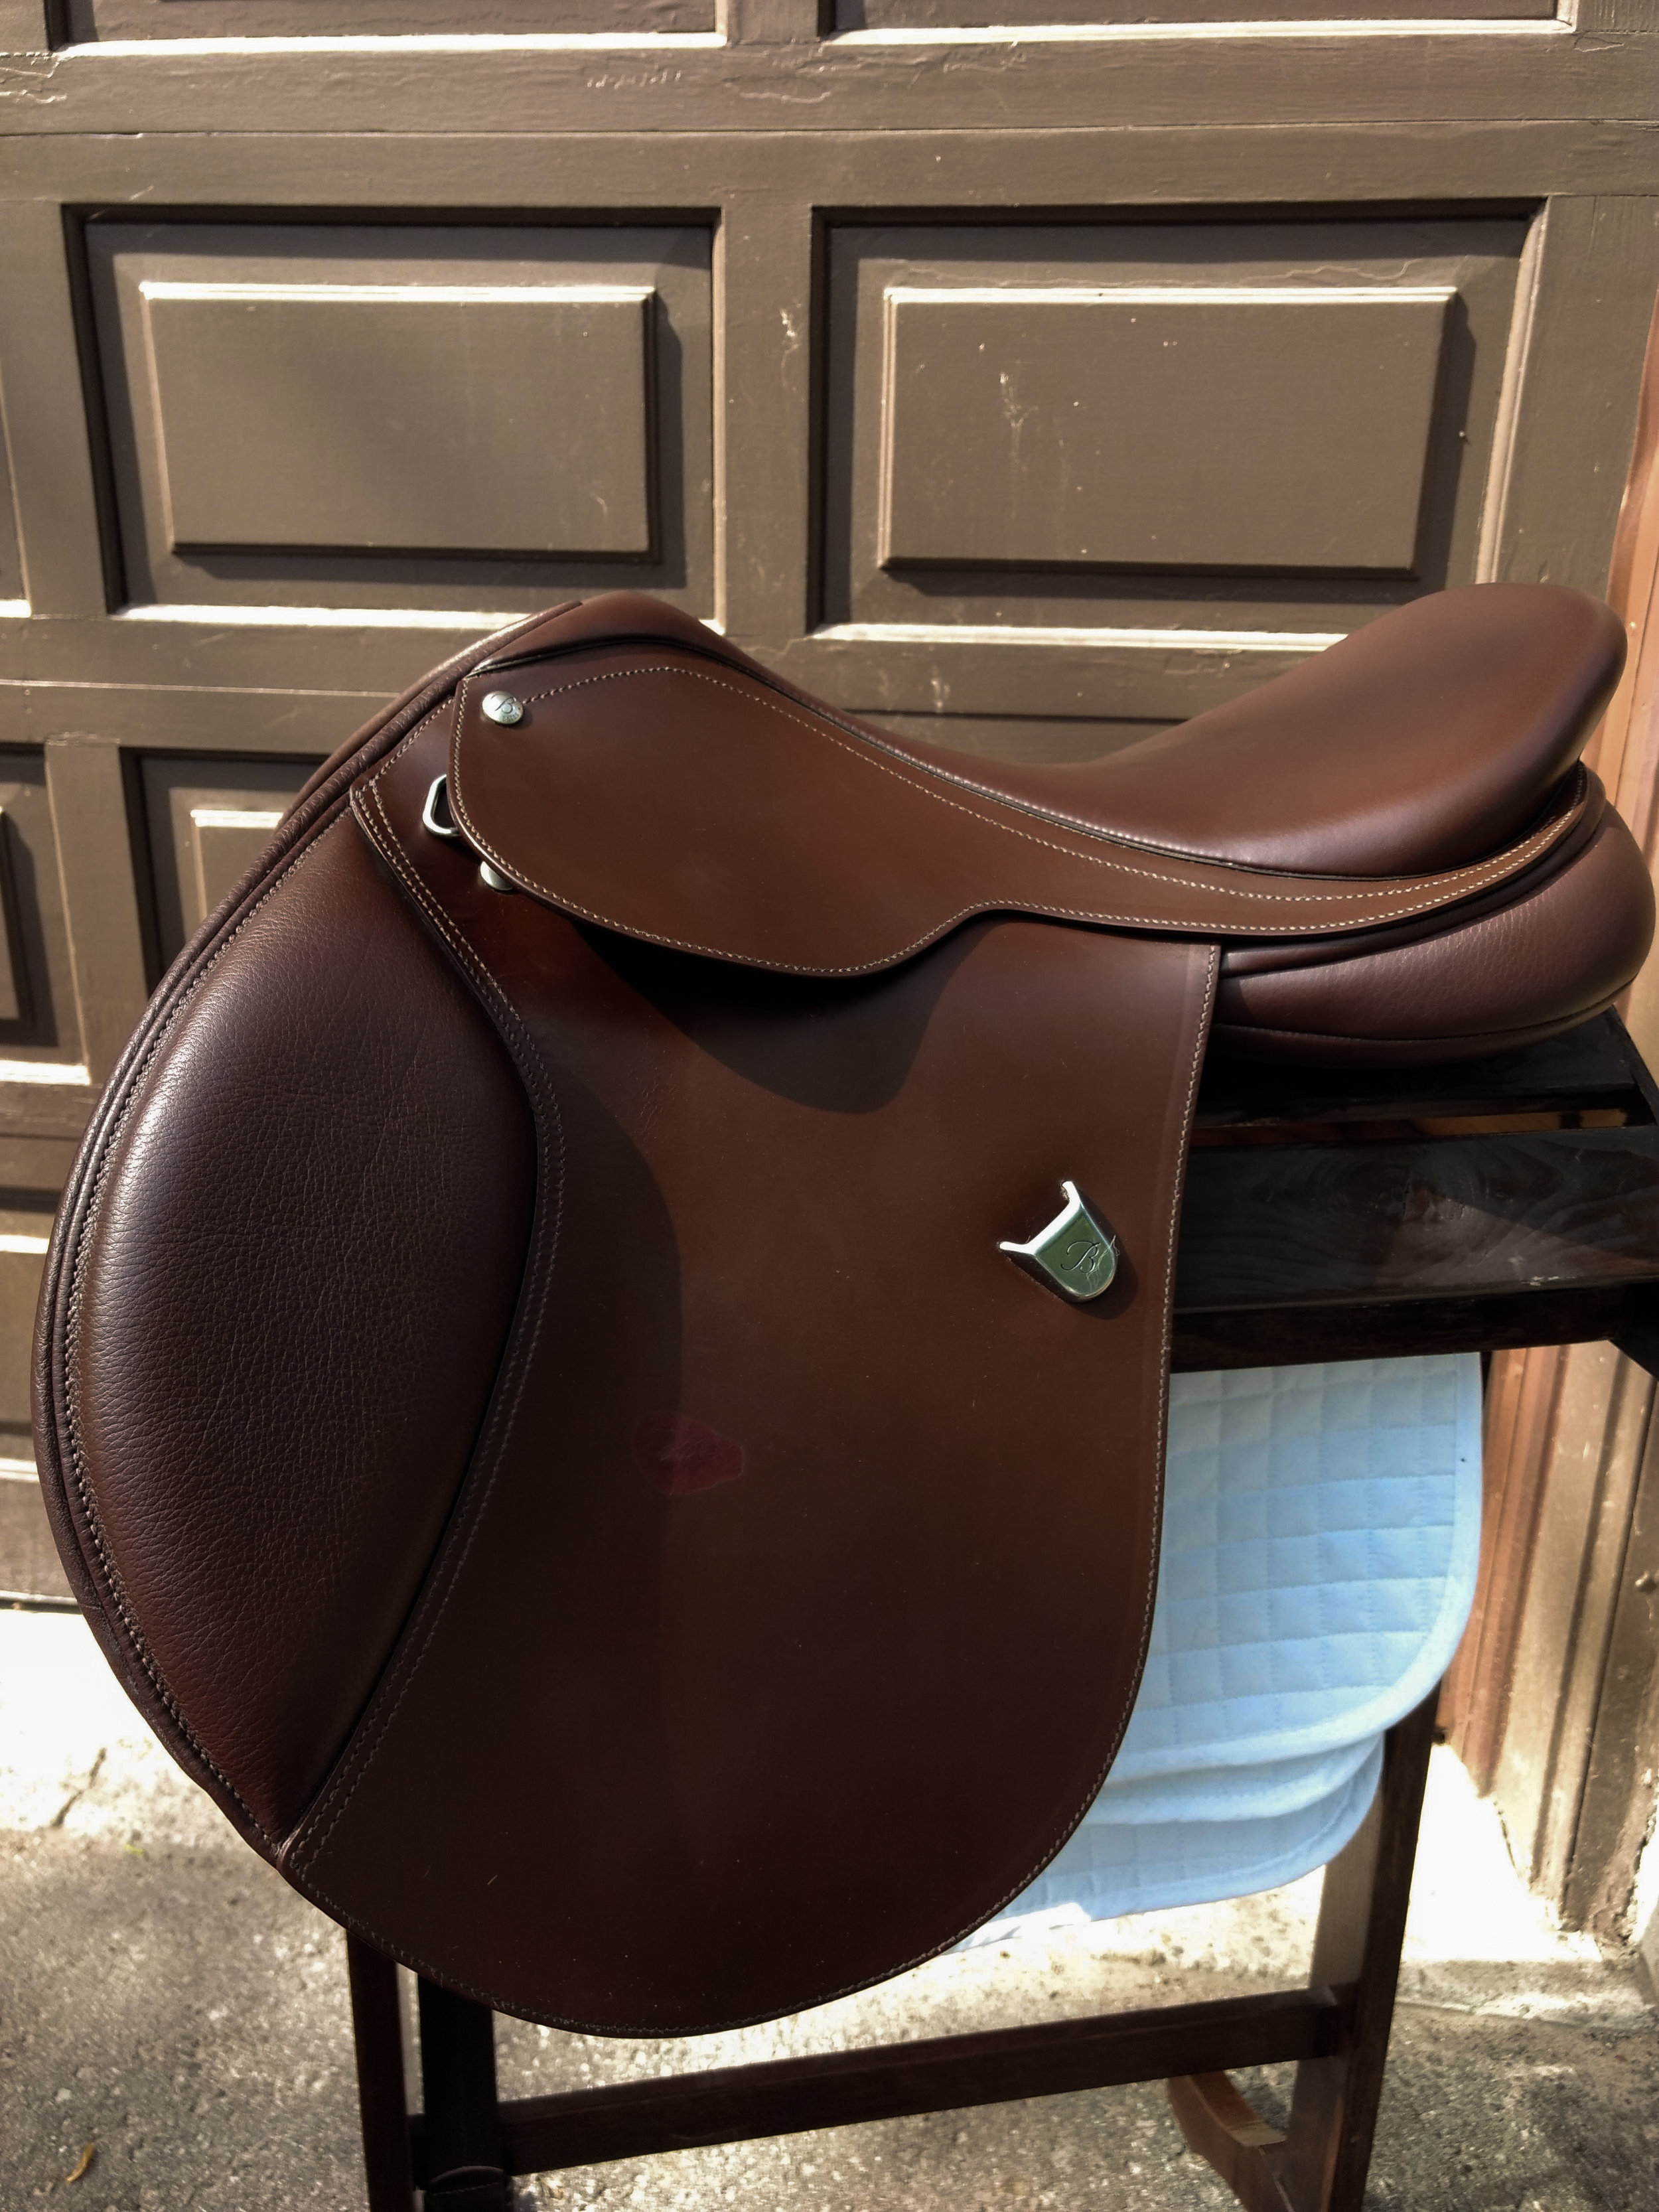 Left side of my saddle before the repair